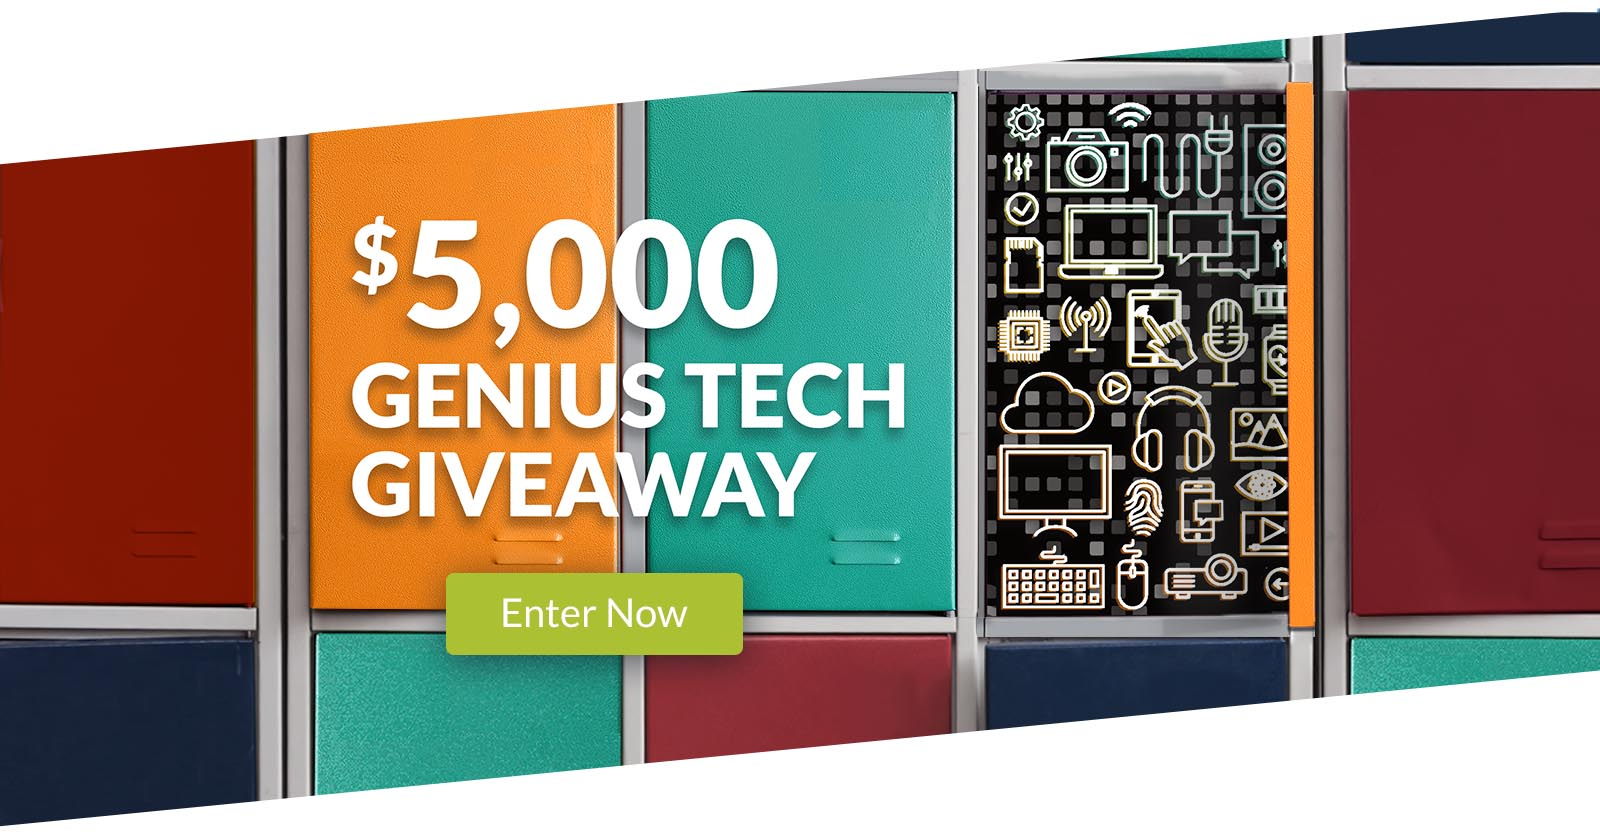 Genius Tech Giveaway